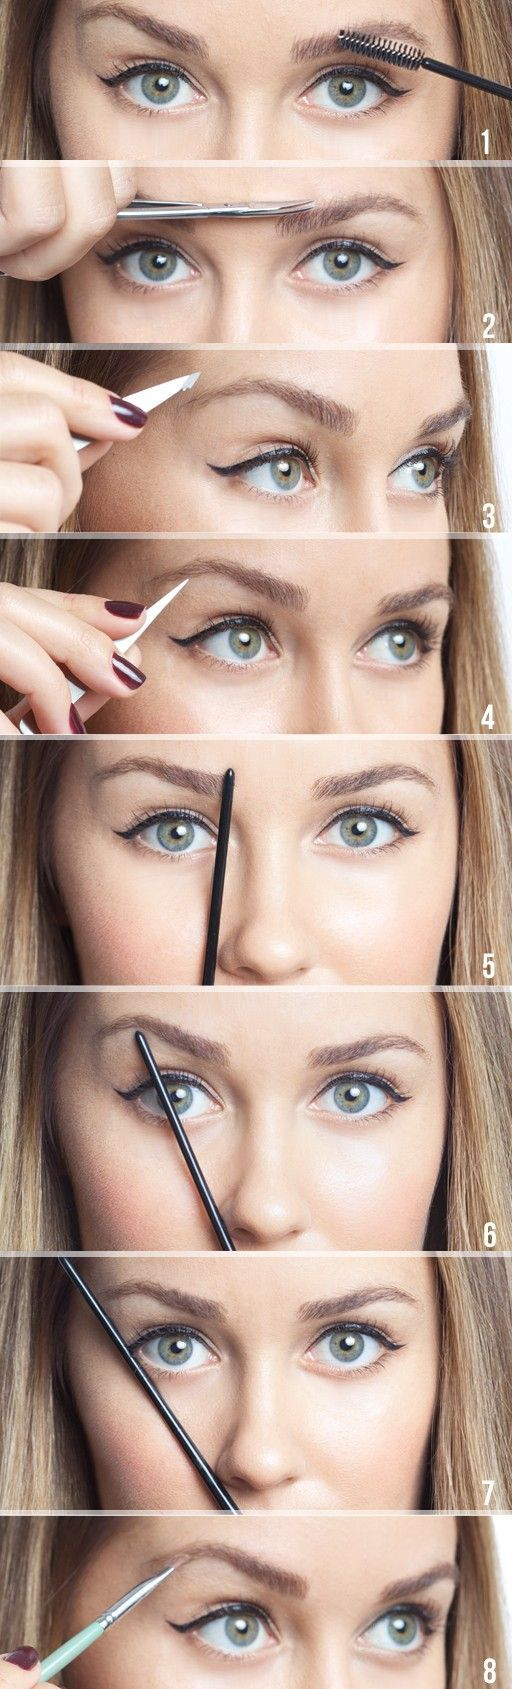 Eye brow shaping tutorial